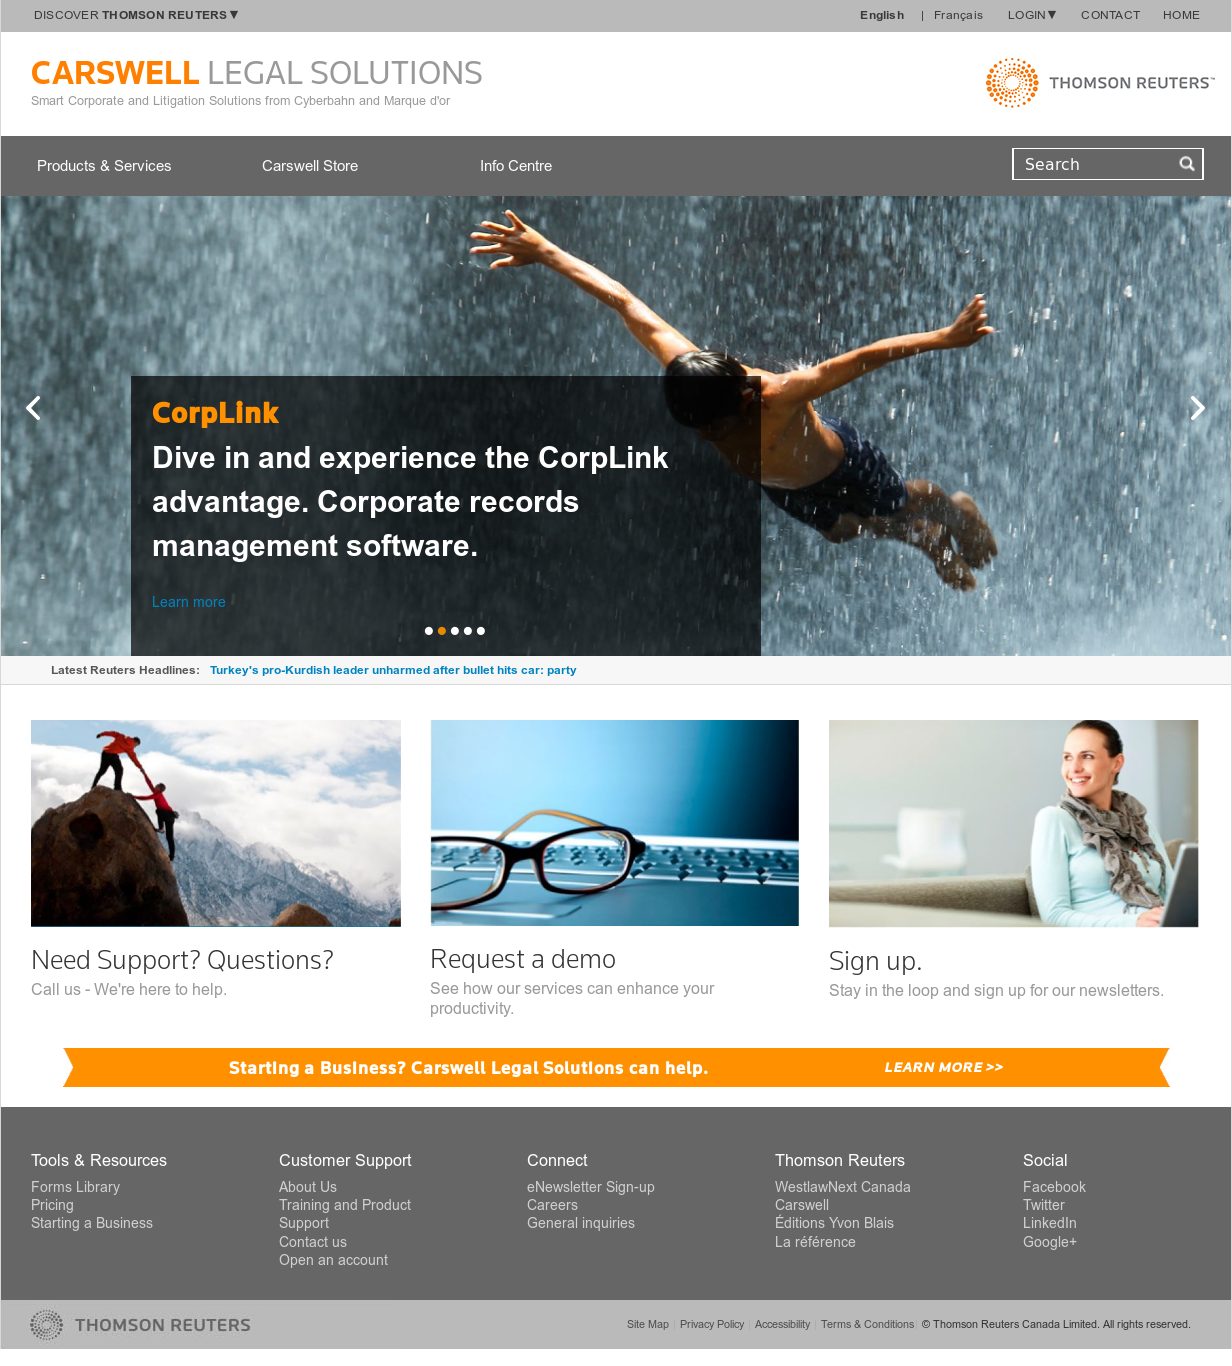 Carswell Legal Solutions Competitors, Revenue and Employees